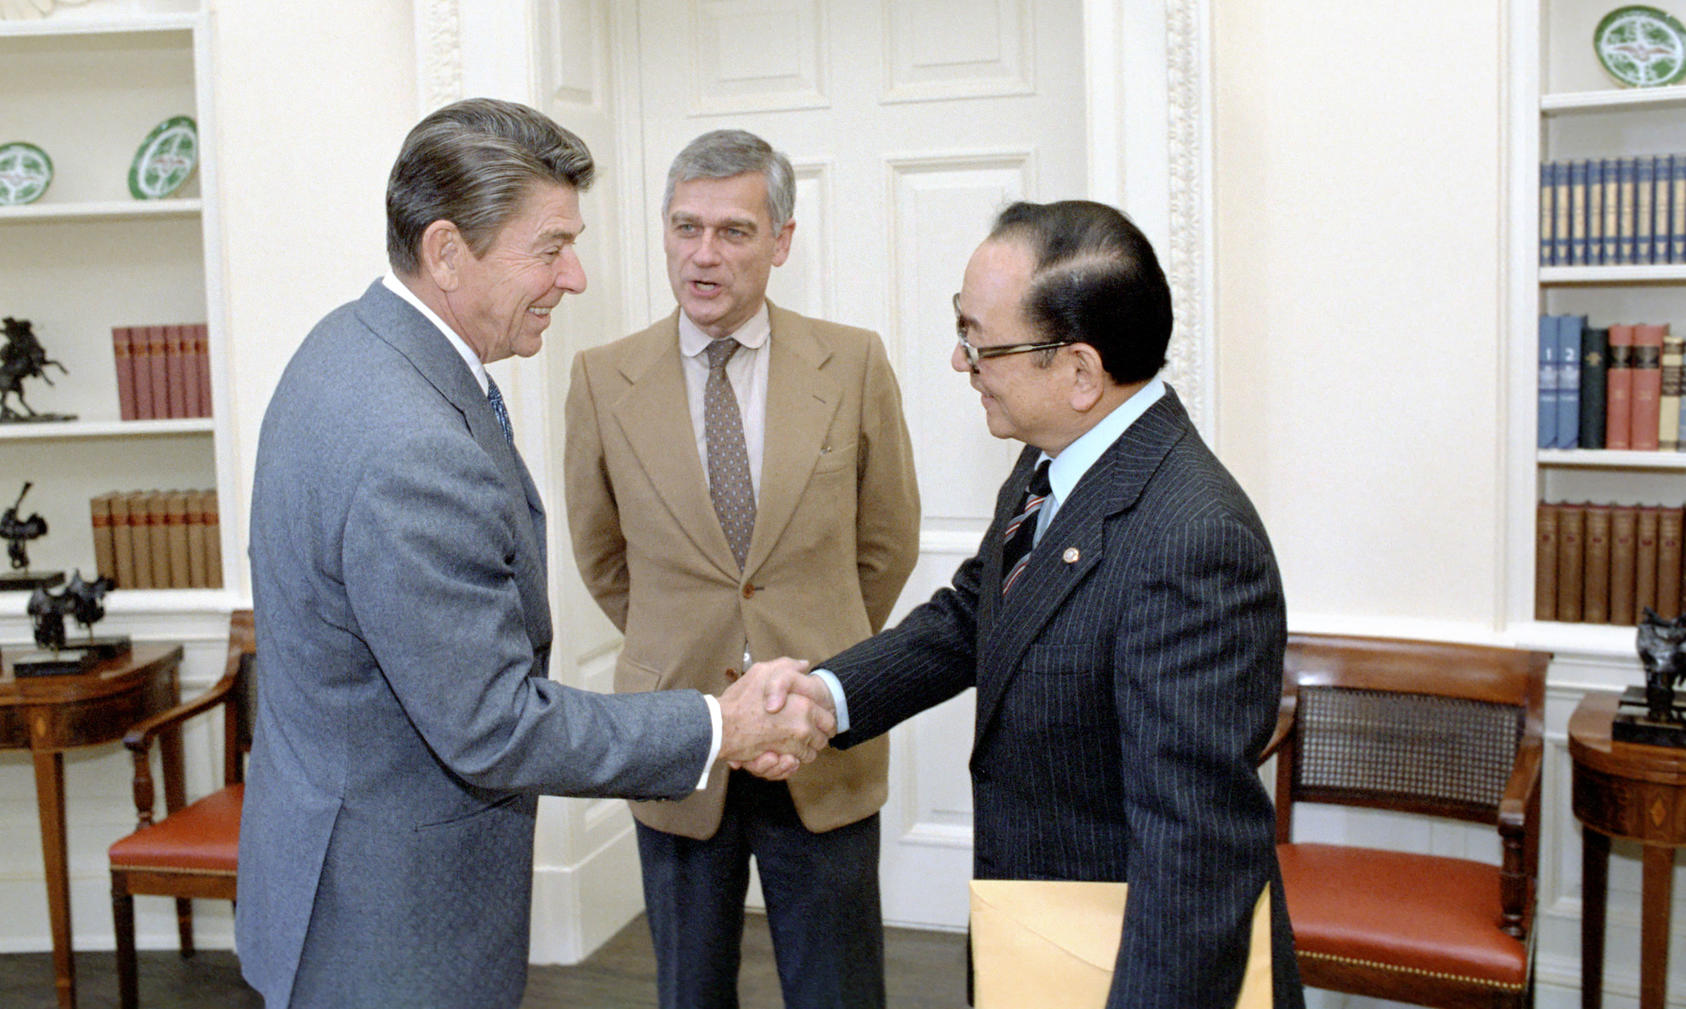 As senators, former World War II lieutenants Spark Matsunaga of Hawaii, right, and Mark Hatfield of Oregon, center, join President Ronald Reagan in 1984 to formally establish the U.S. Institute of Peace.  (The White House)